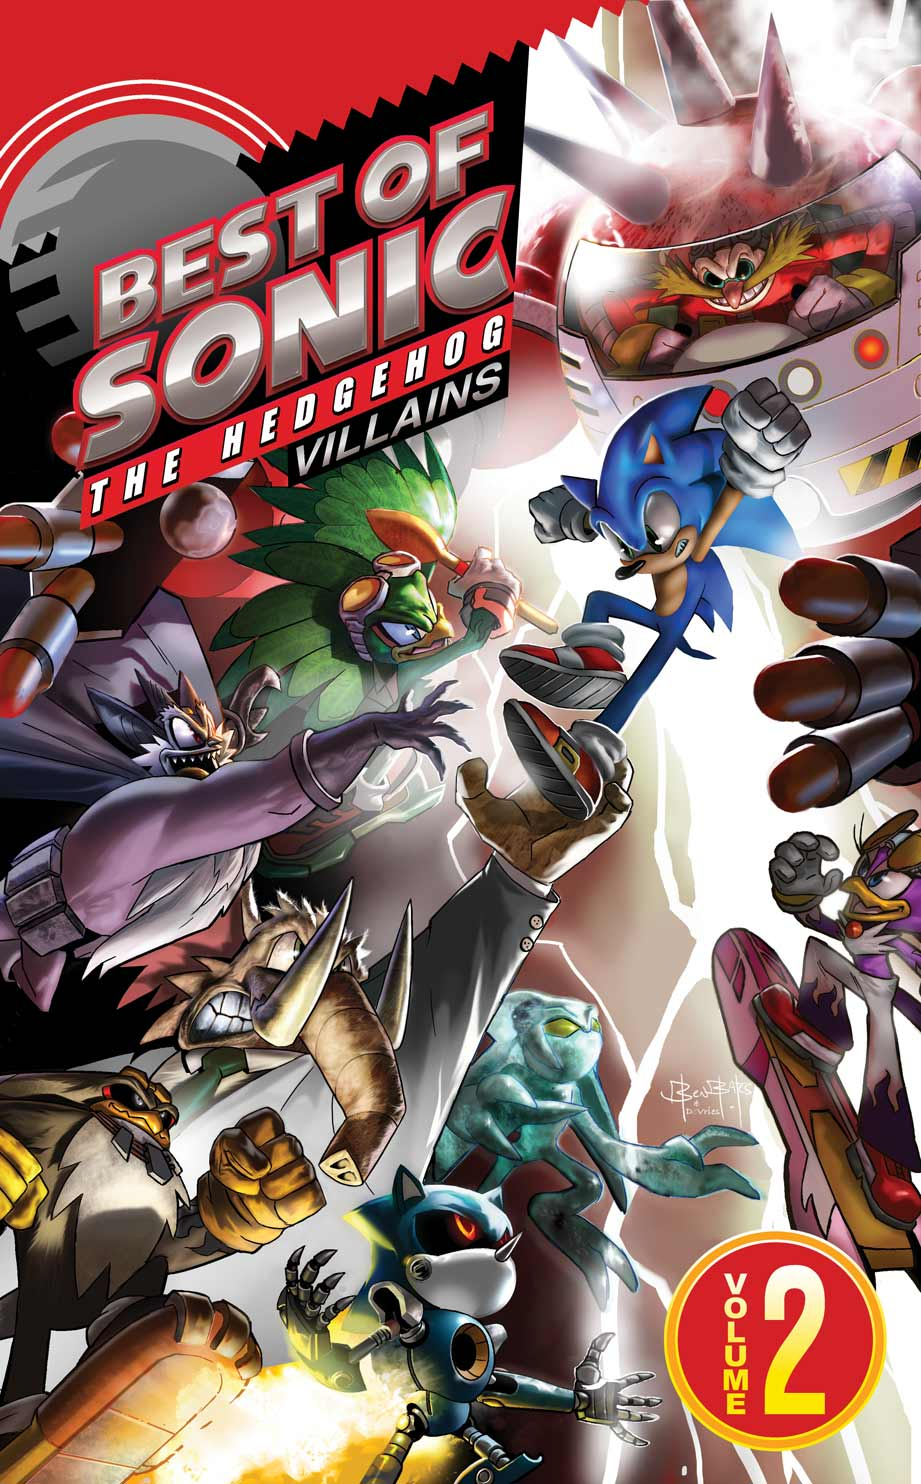 Best Of Sonic The Hedgehog Villains Sonic News Network Fandom